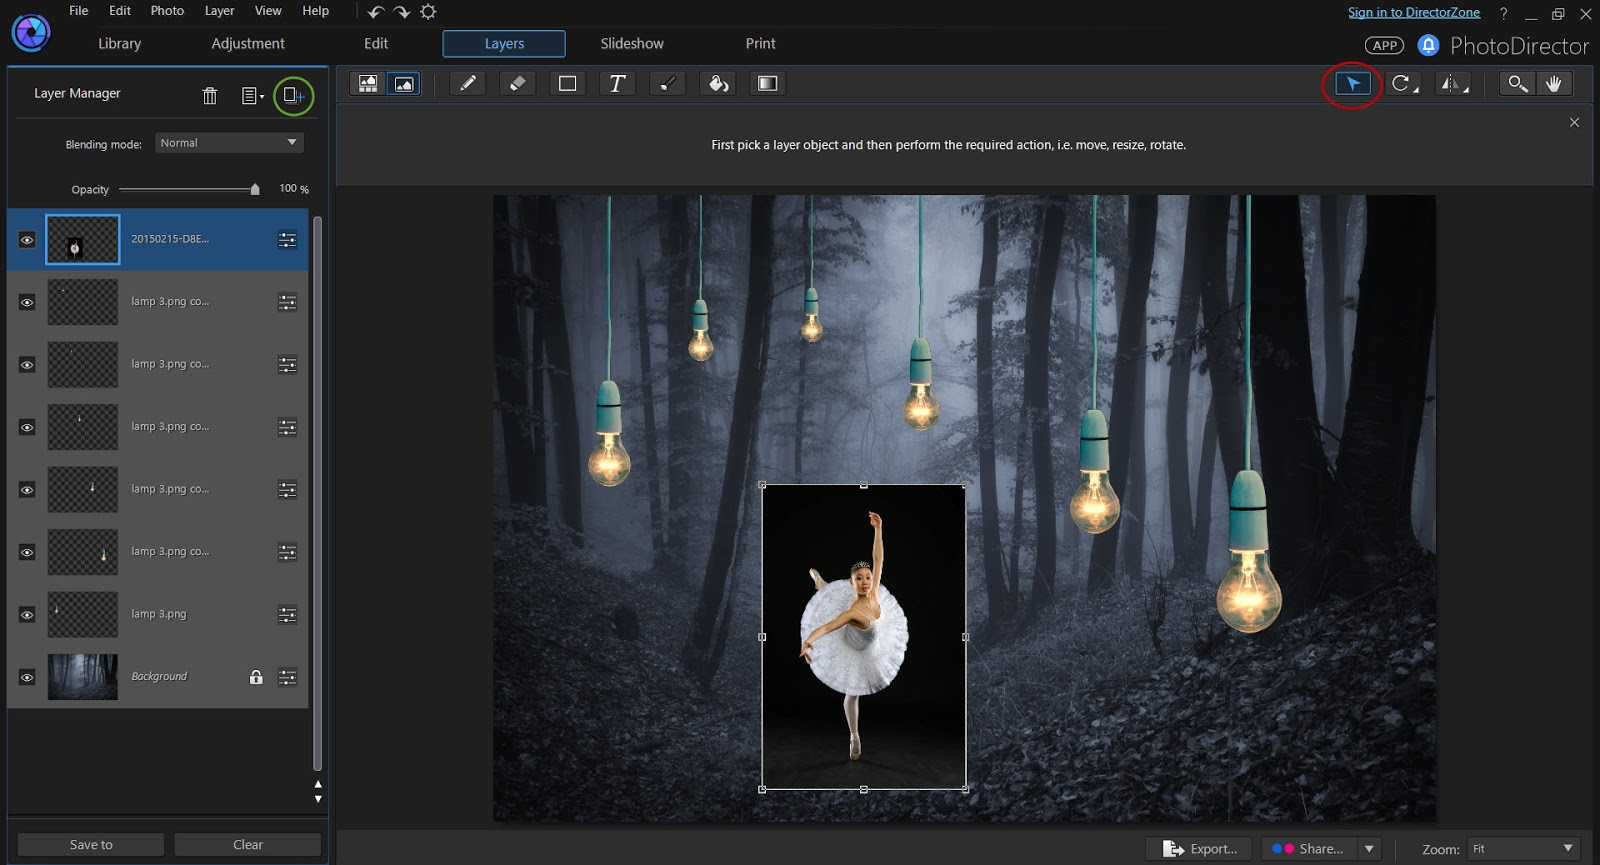 Background image editor - The Ballerina Photo Was Taken In The Studio With A Black Background Simply Change The Blending Mode To Lighten And The Black Background Will Be Removed